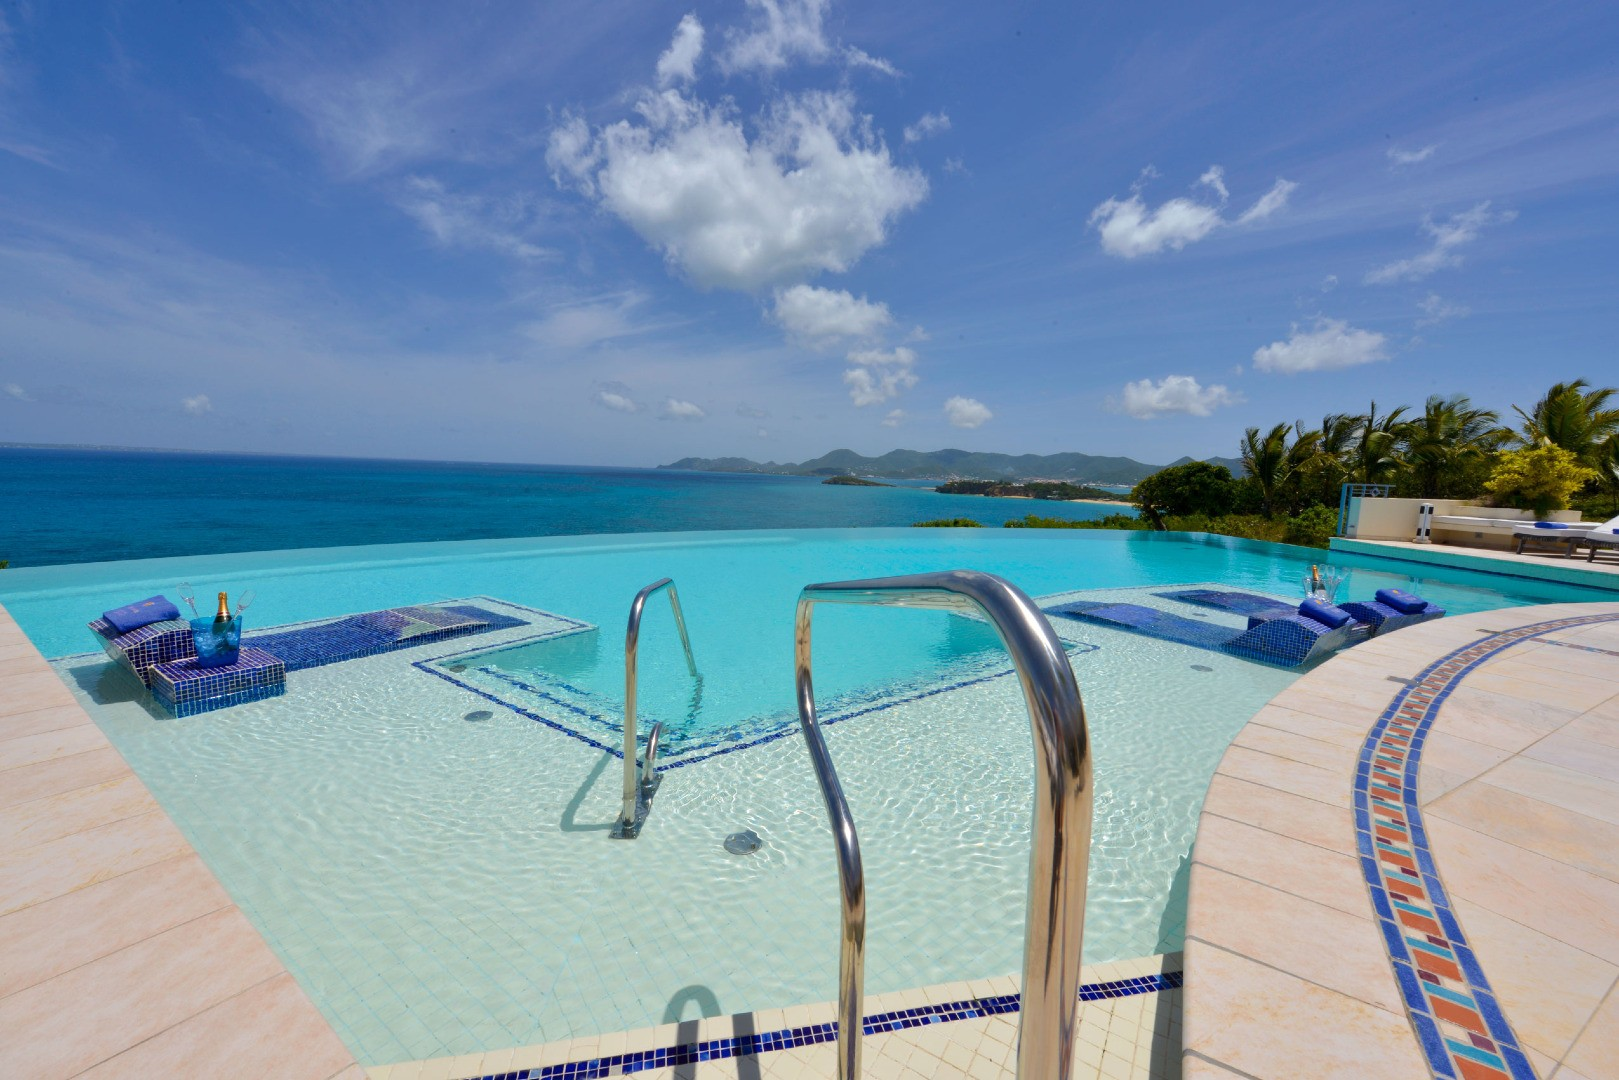 luxury pool outdoor turquoise paradise st martin